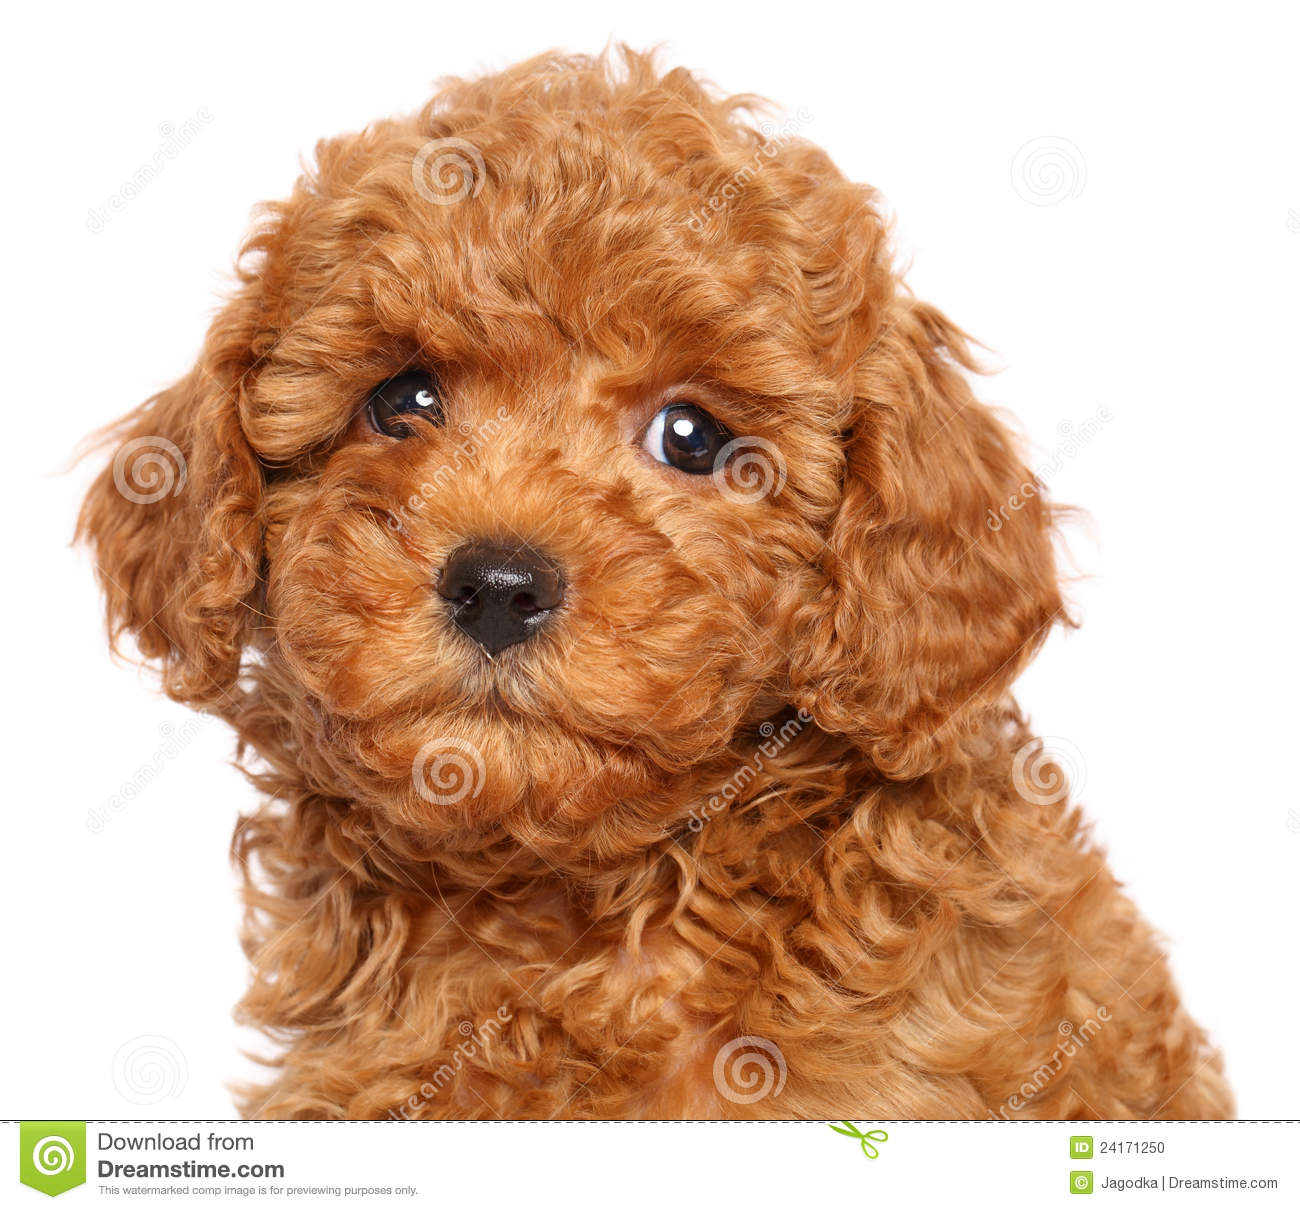 Red Toy Dogs : Toy poodle puppy on a white background stock photo image